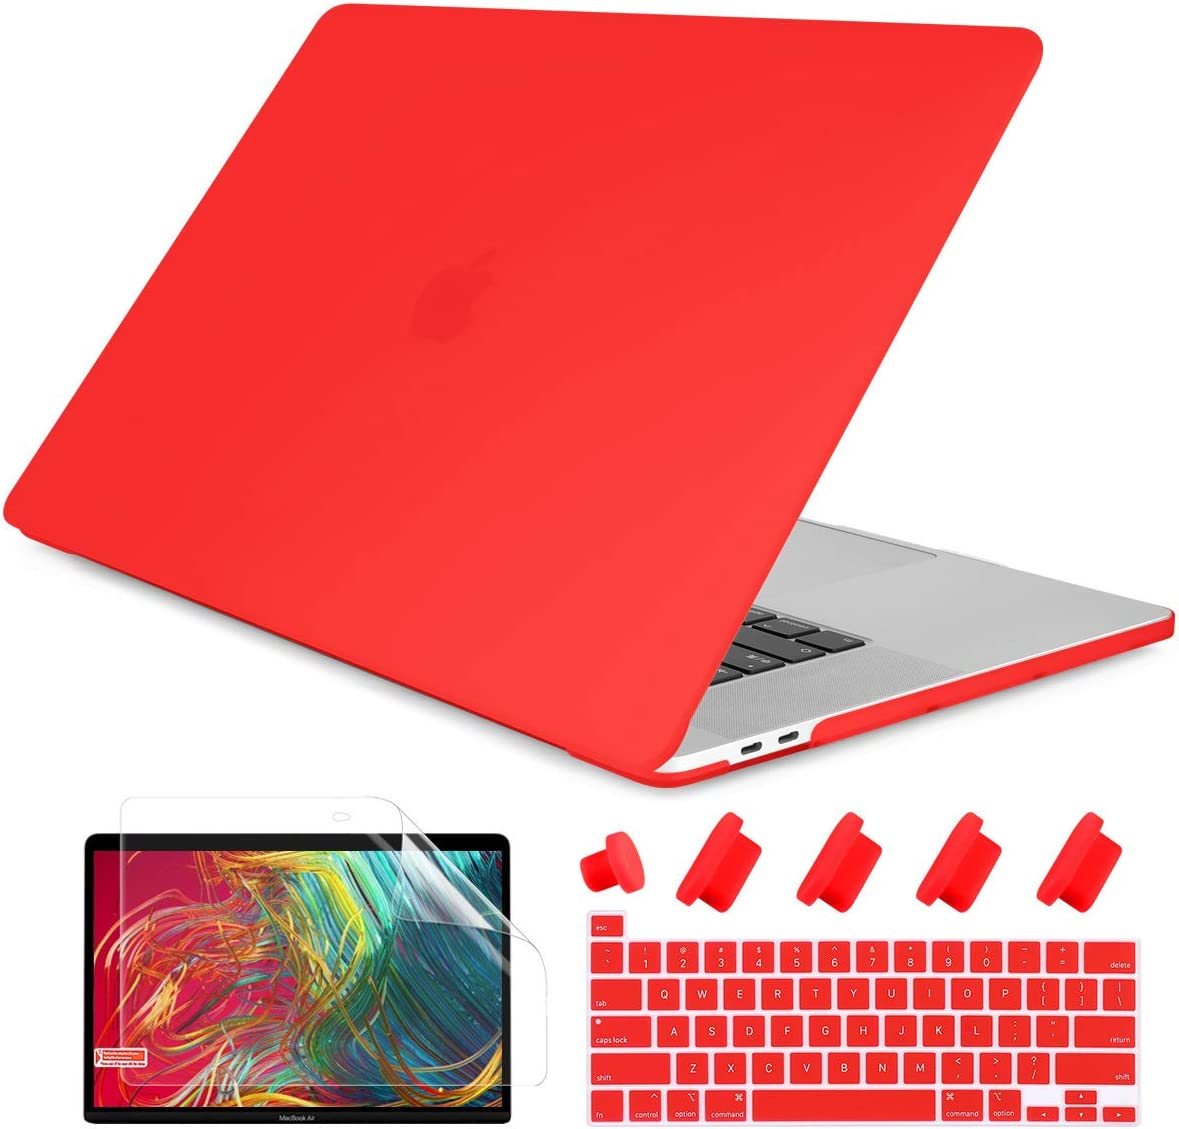 Dongke Laptop Case for Newest MacBook Pro 13 2020 Model A2251/A2289, Plastic Smooth Frosted Hard Shell Cover Case for MacBook Pro 13 inch with Retina Display and Touch Bar Fits Touch ID, Matte Red